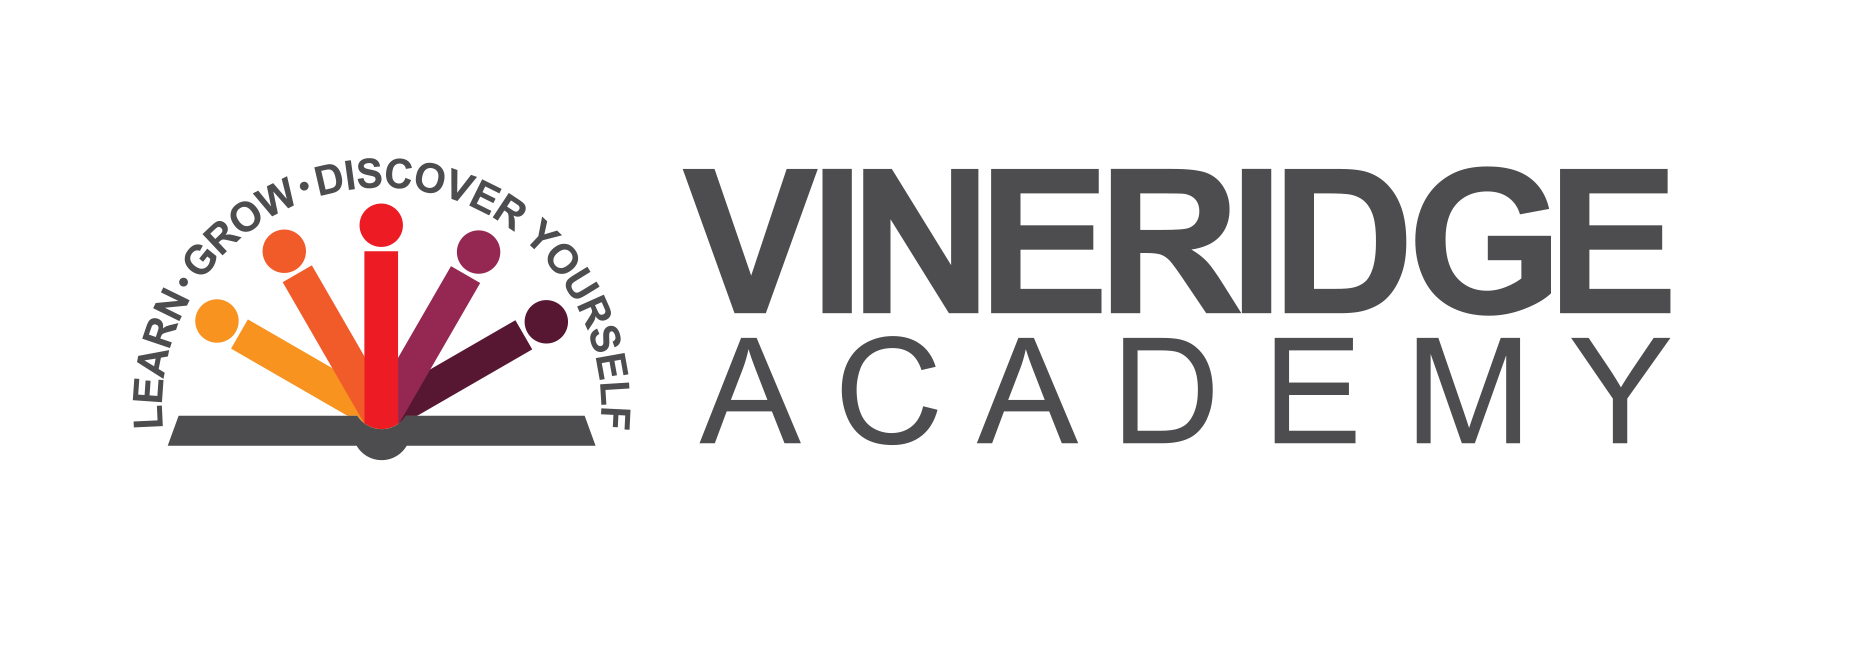 Vineridge Academy